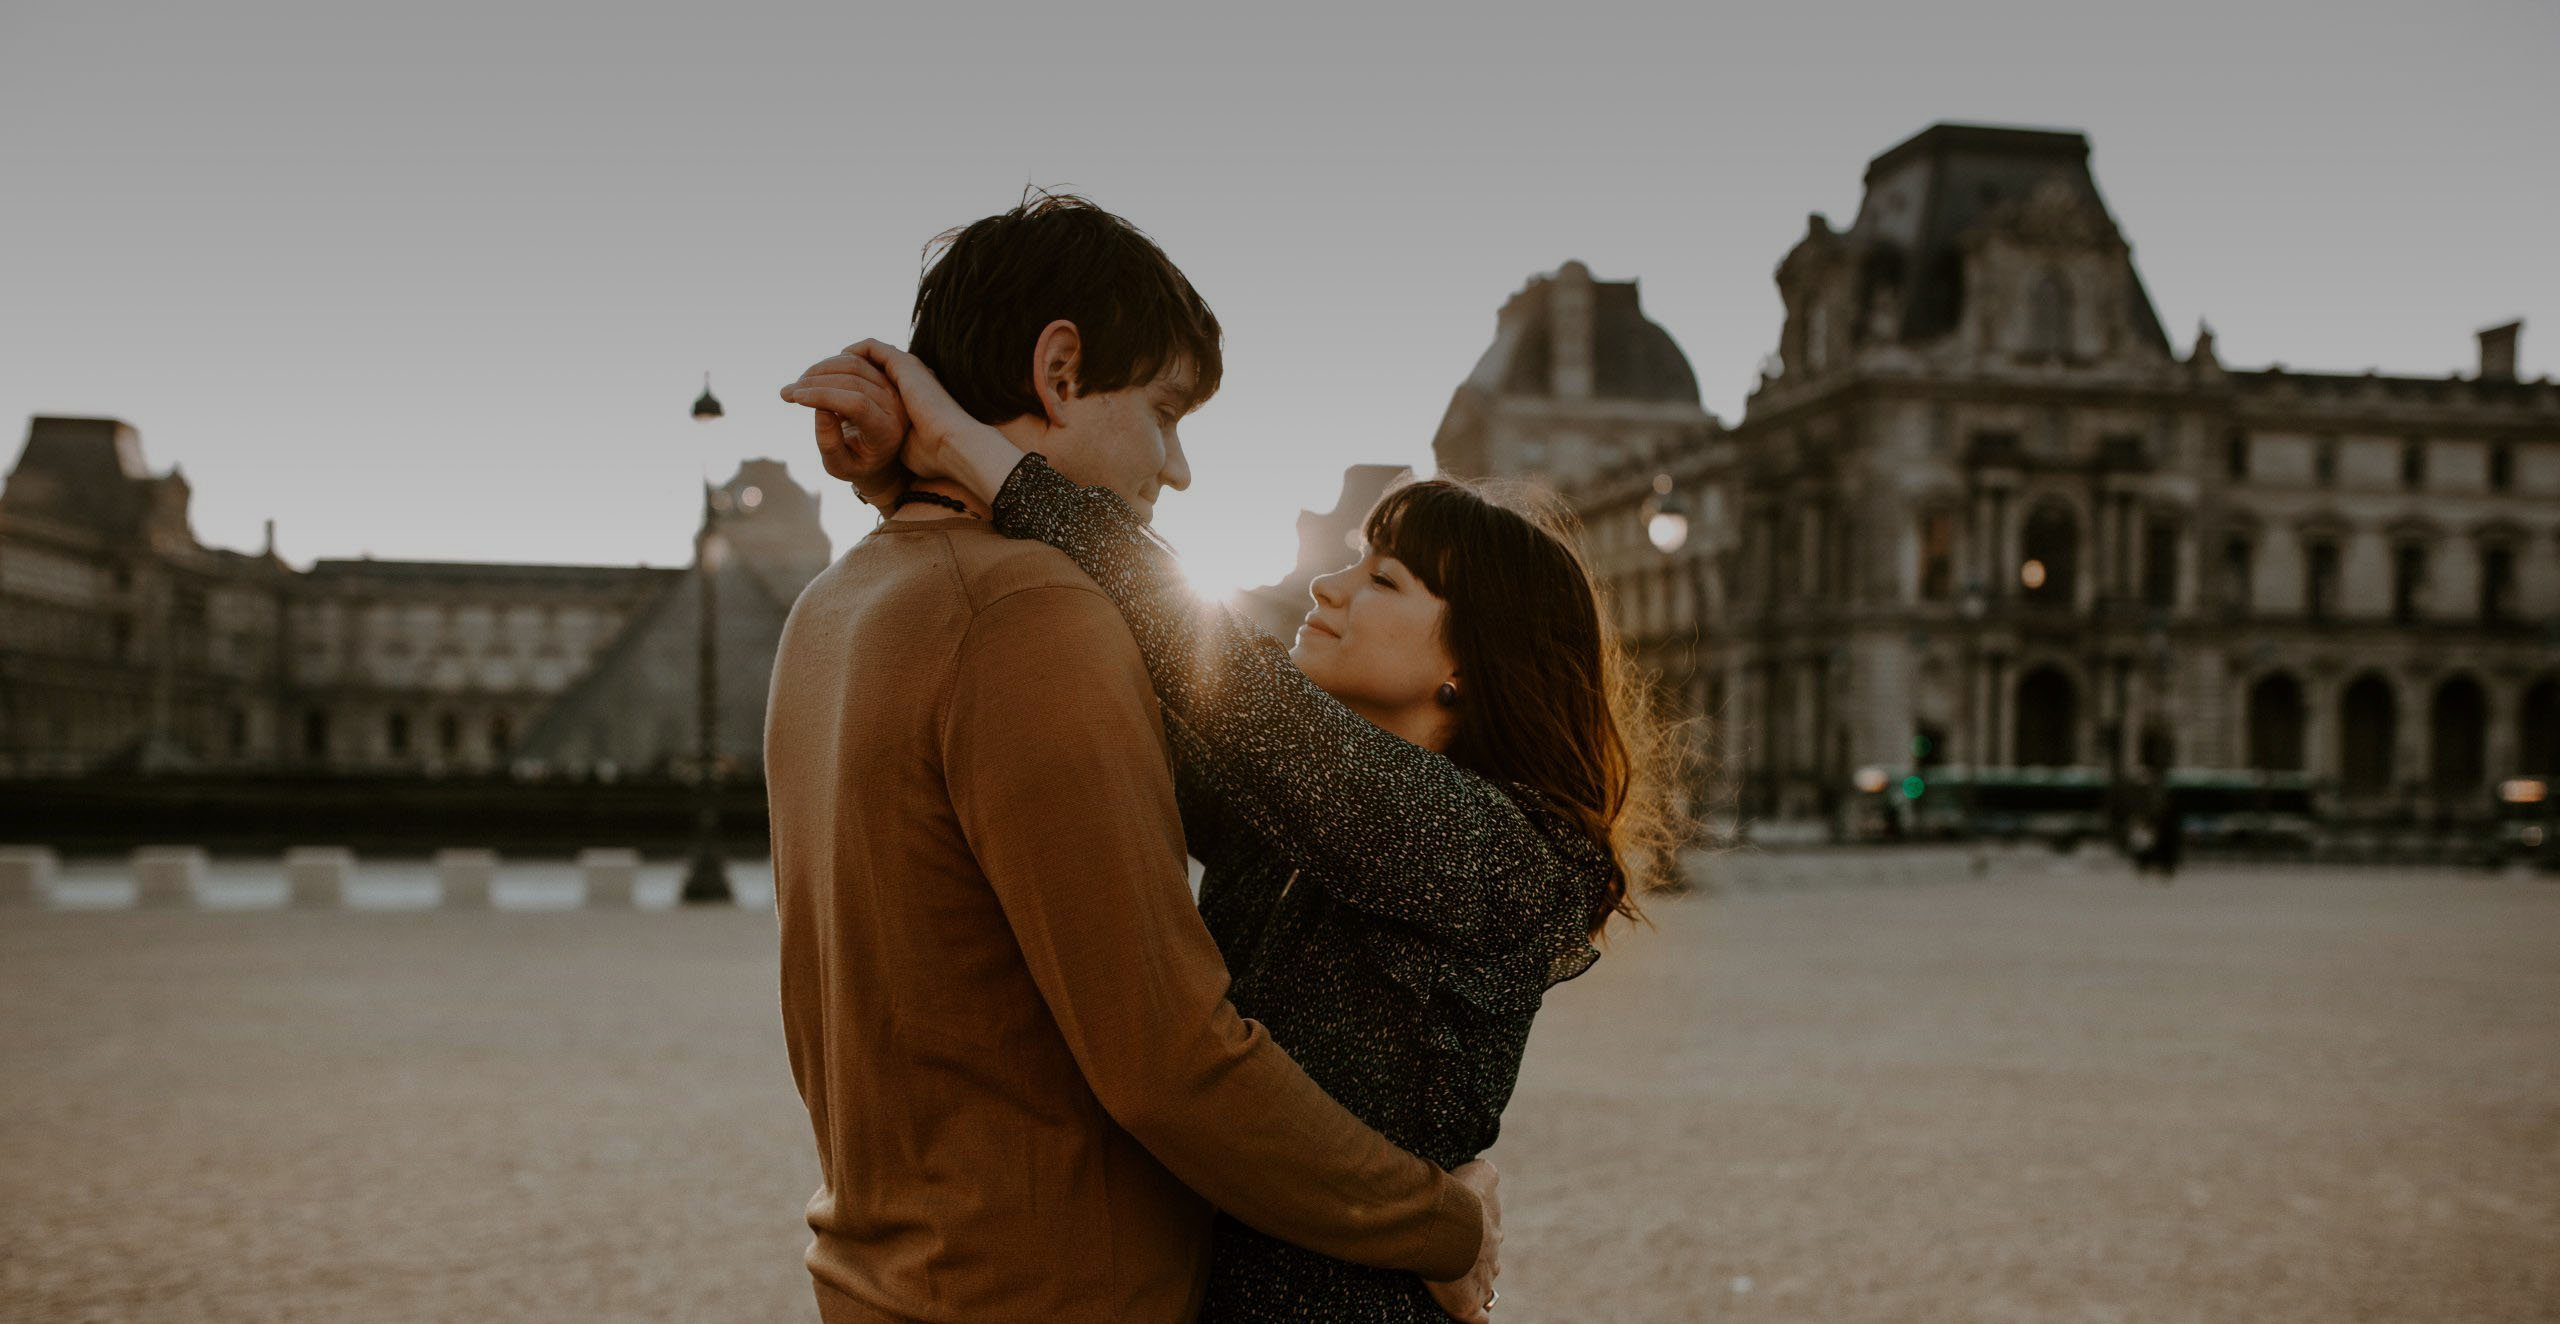 A photo of Alison and Lance near the Louvre in Paris